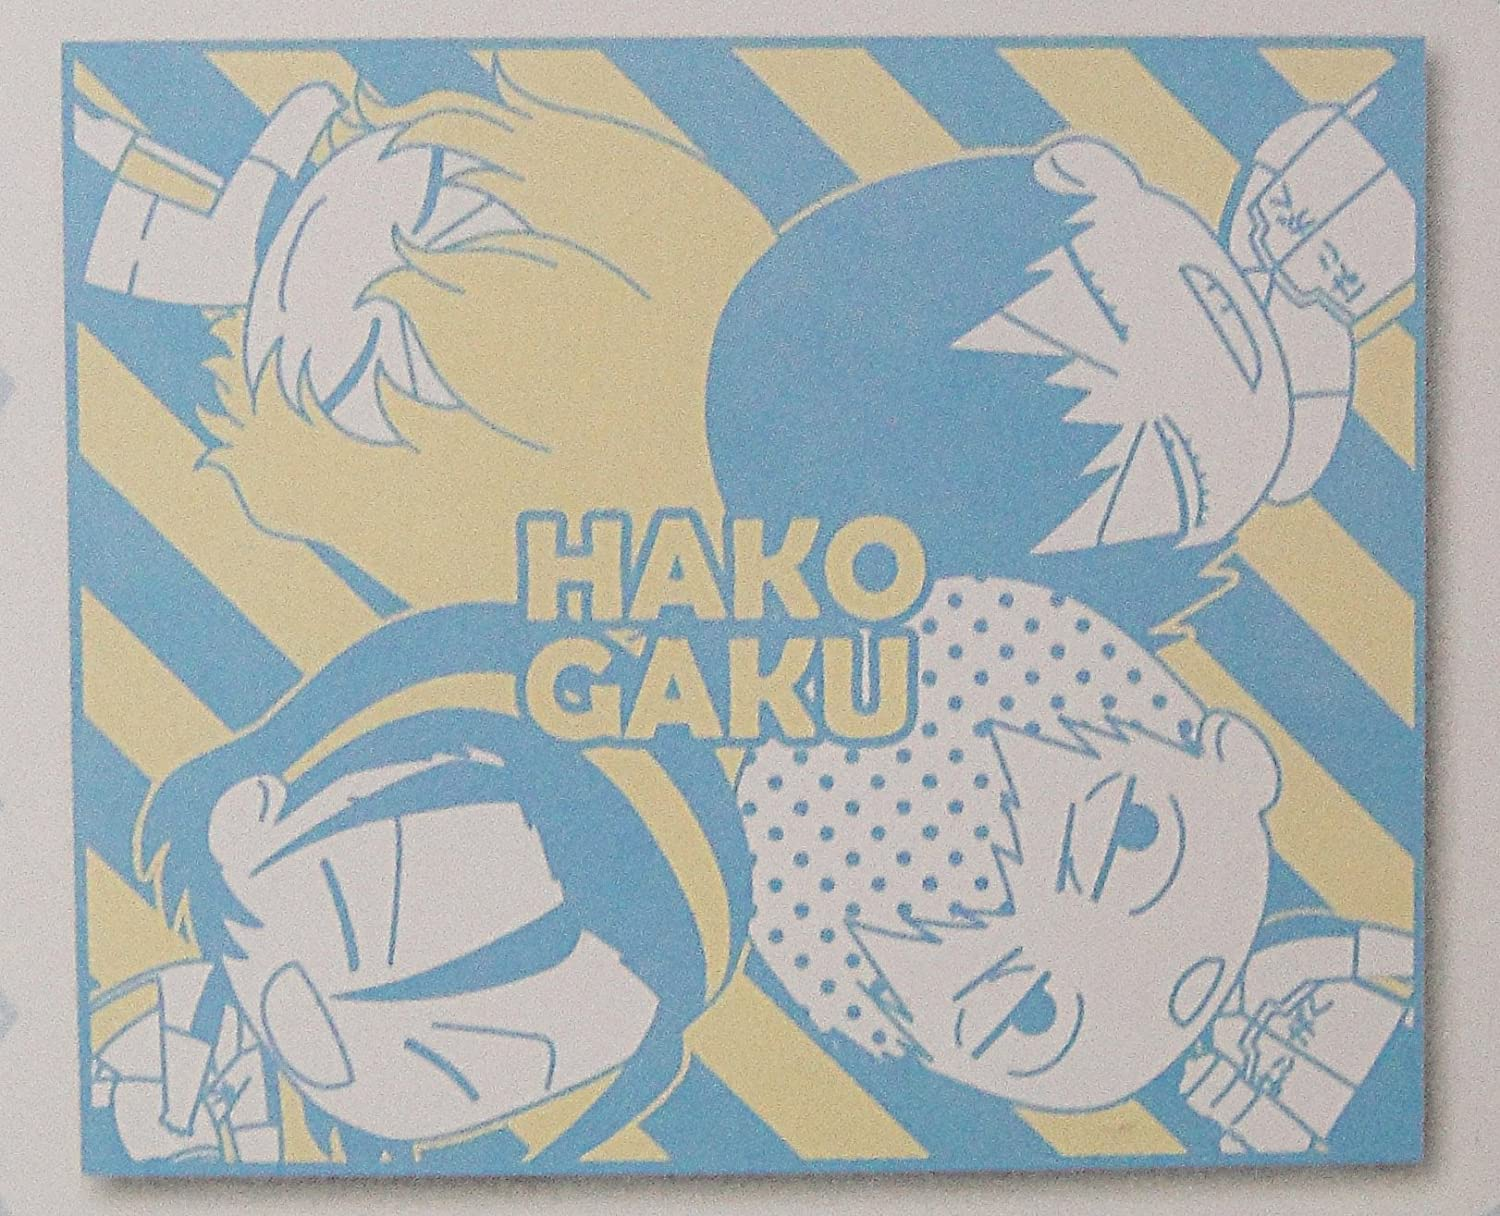 Sissy pedal GRANDE ROAD blanket Hakone Gakuen single item